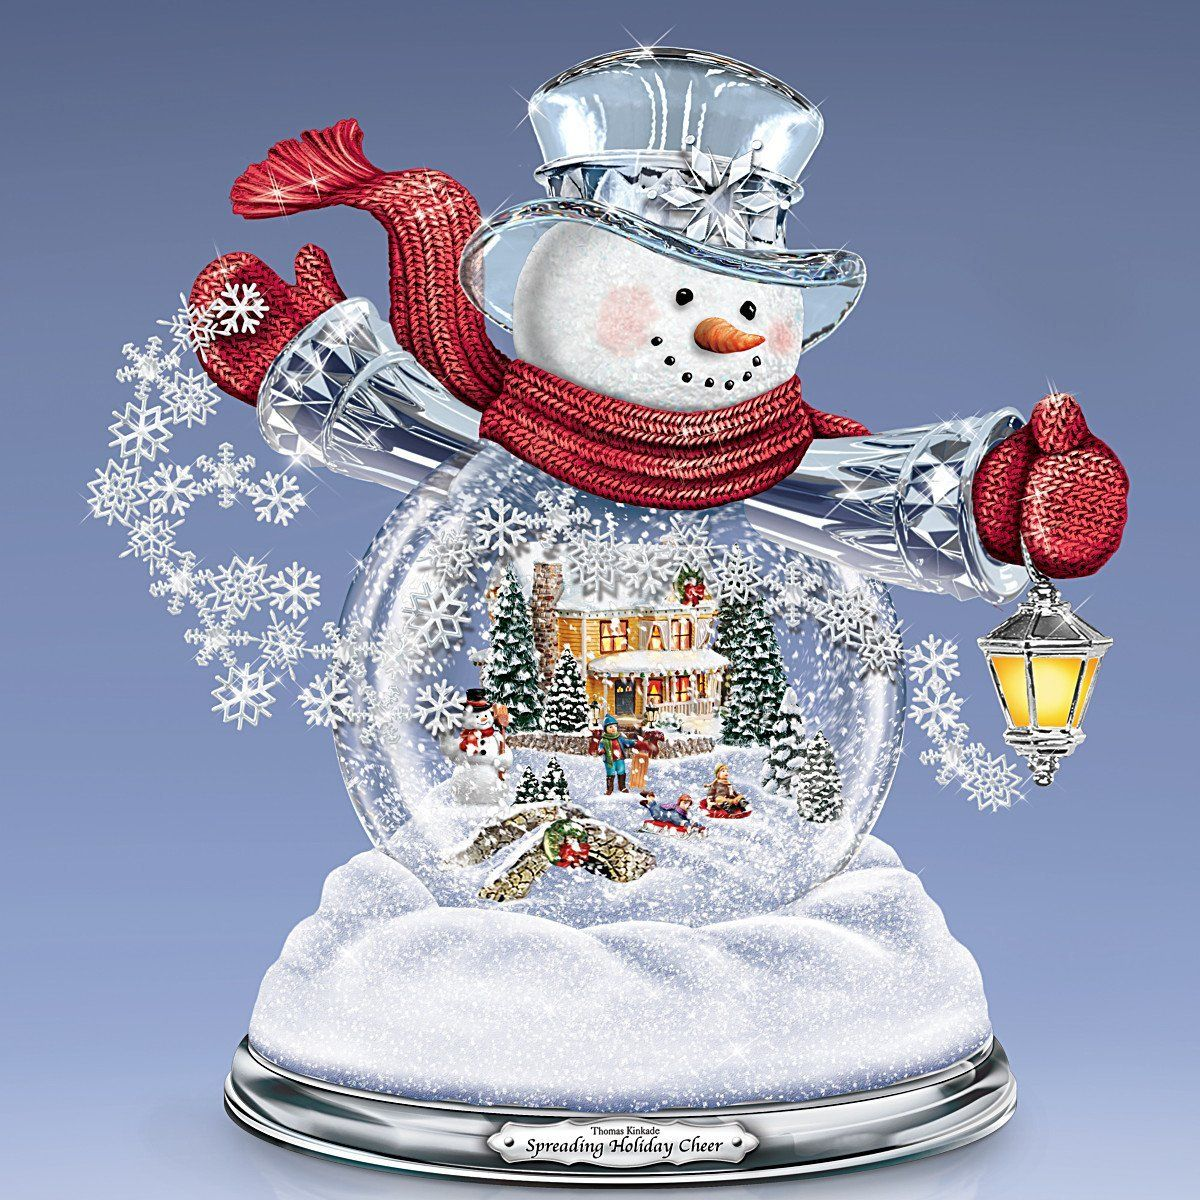 Thomas Kinkade Snowglobe Snowman with Lighted Scene Plays 8 Holiday ...